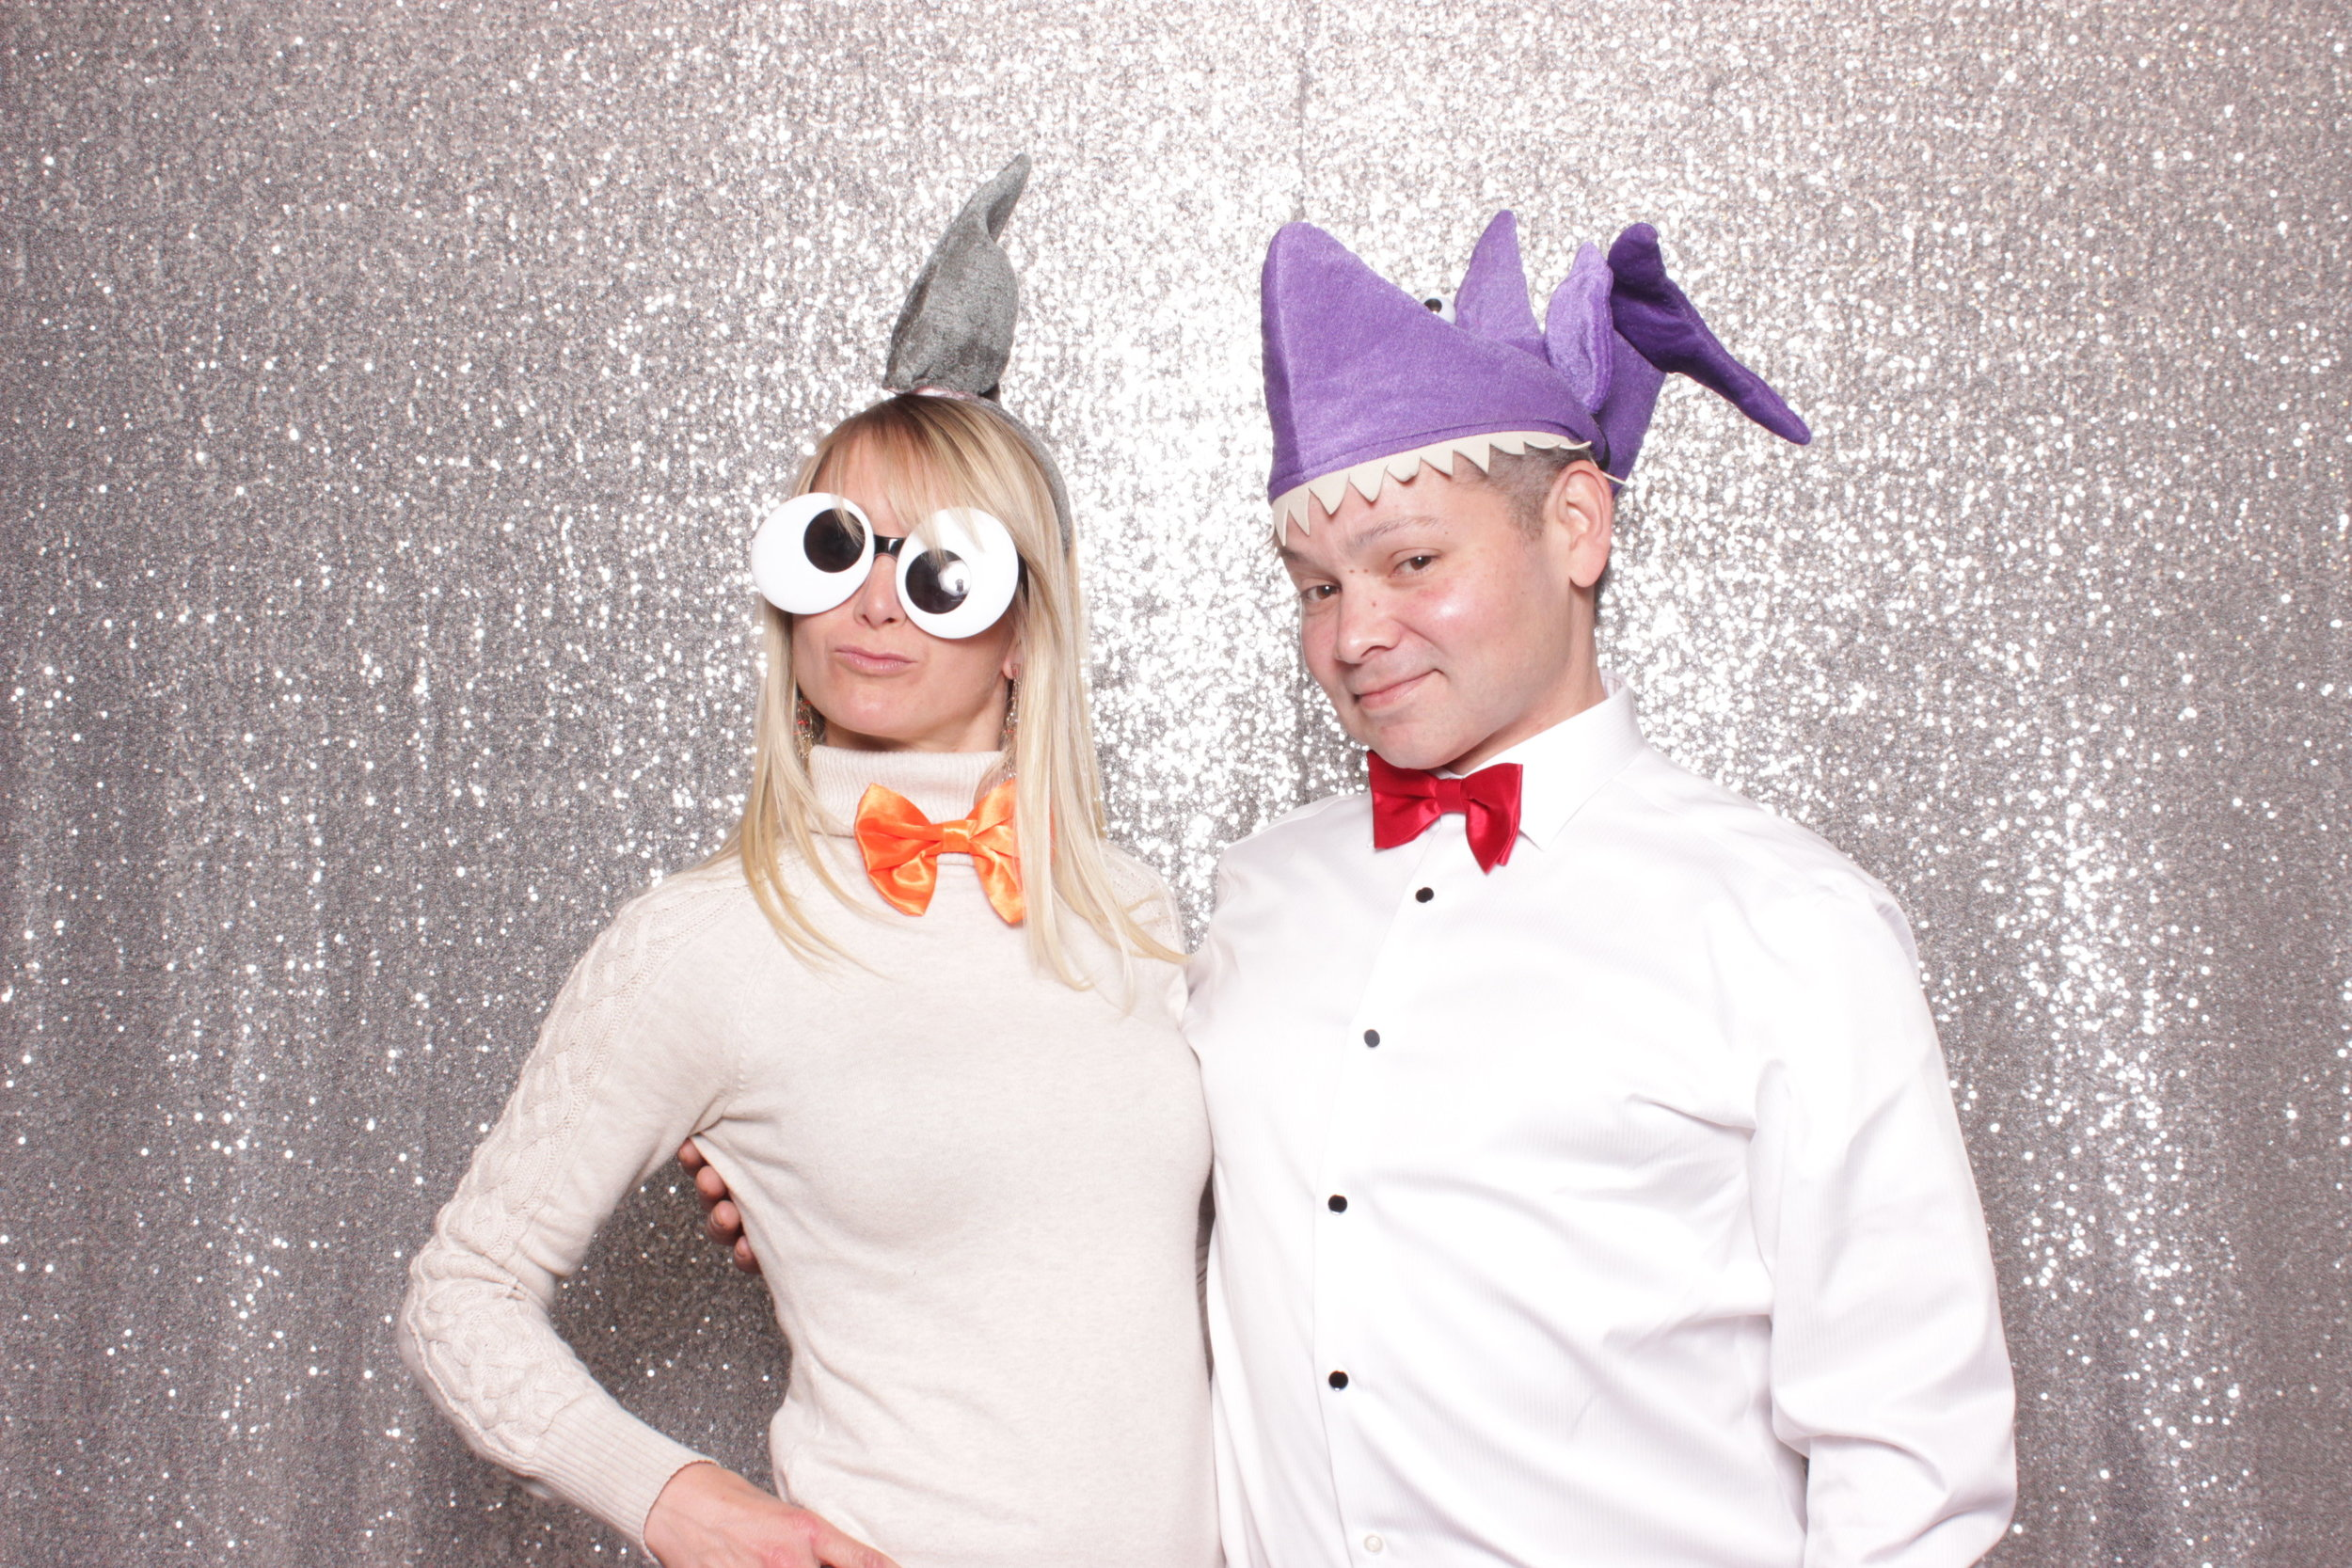 Chico-photo-booth-rental-with-hats